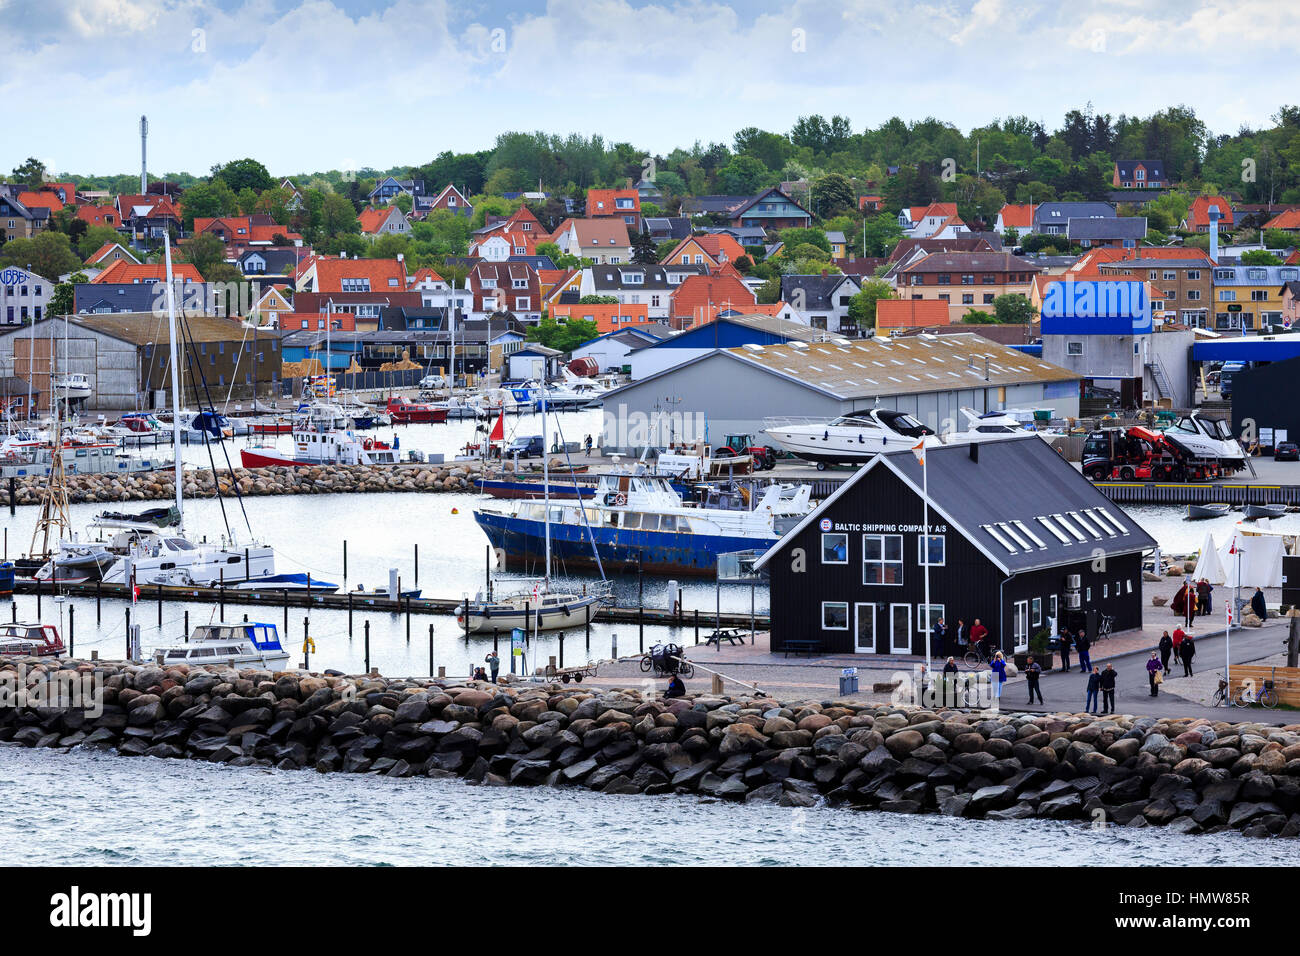 View of harbour Hundested, Denmark - Stock Image